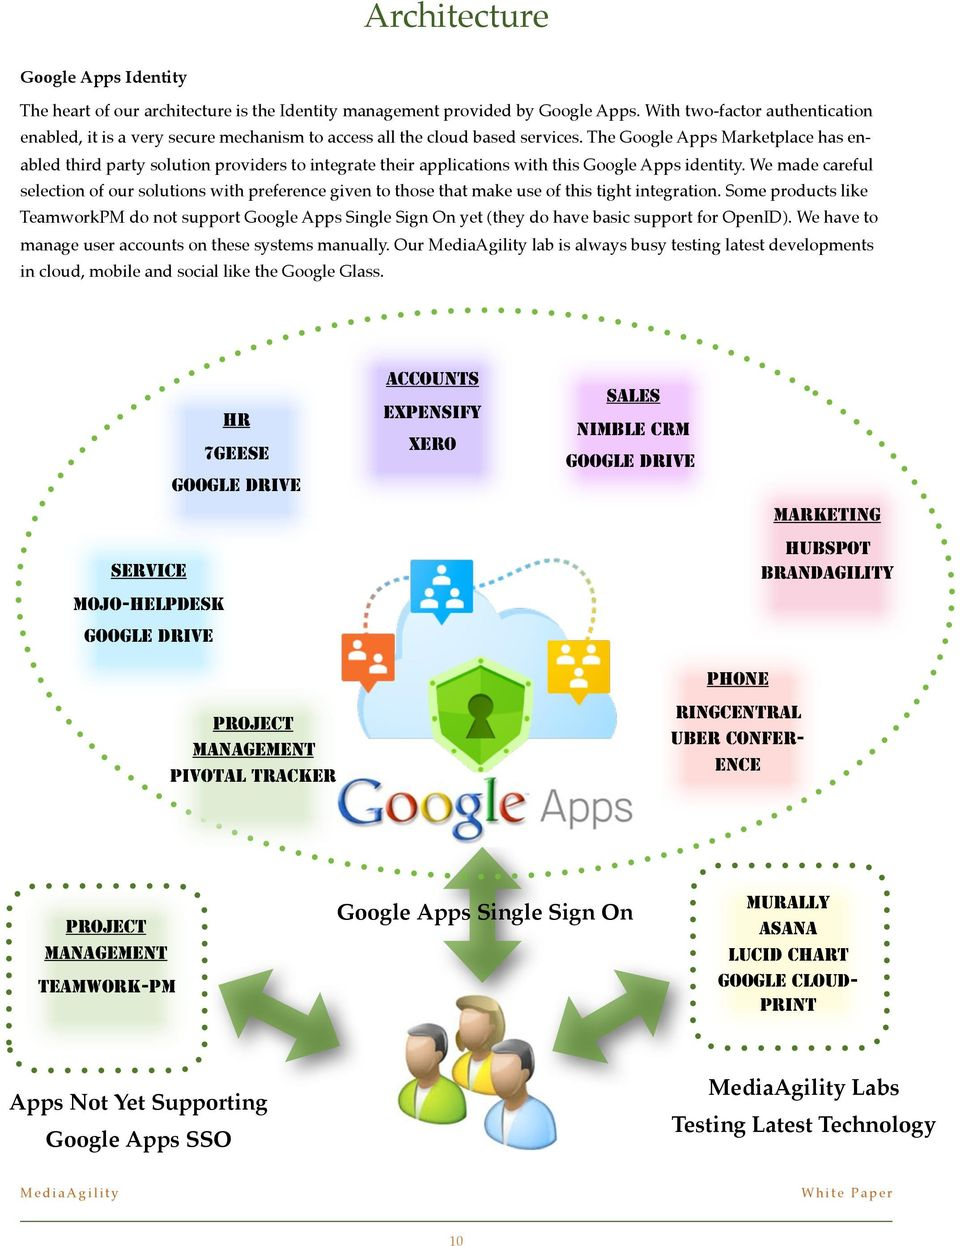 The Google Apps Marketplace has enabled third party solution providers to integrate their applications with this Google Apps identity.